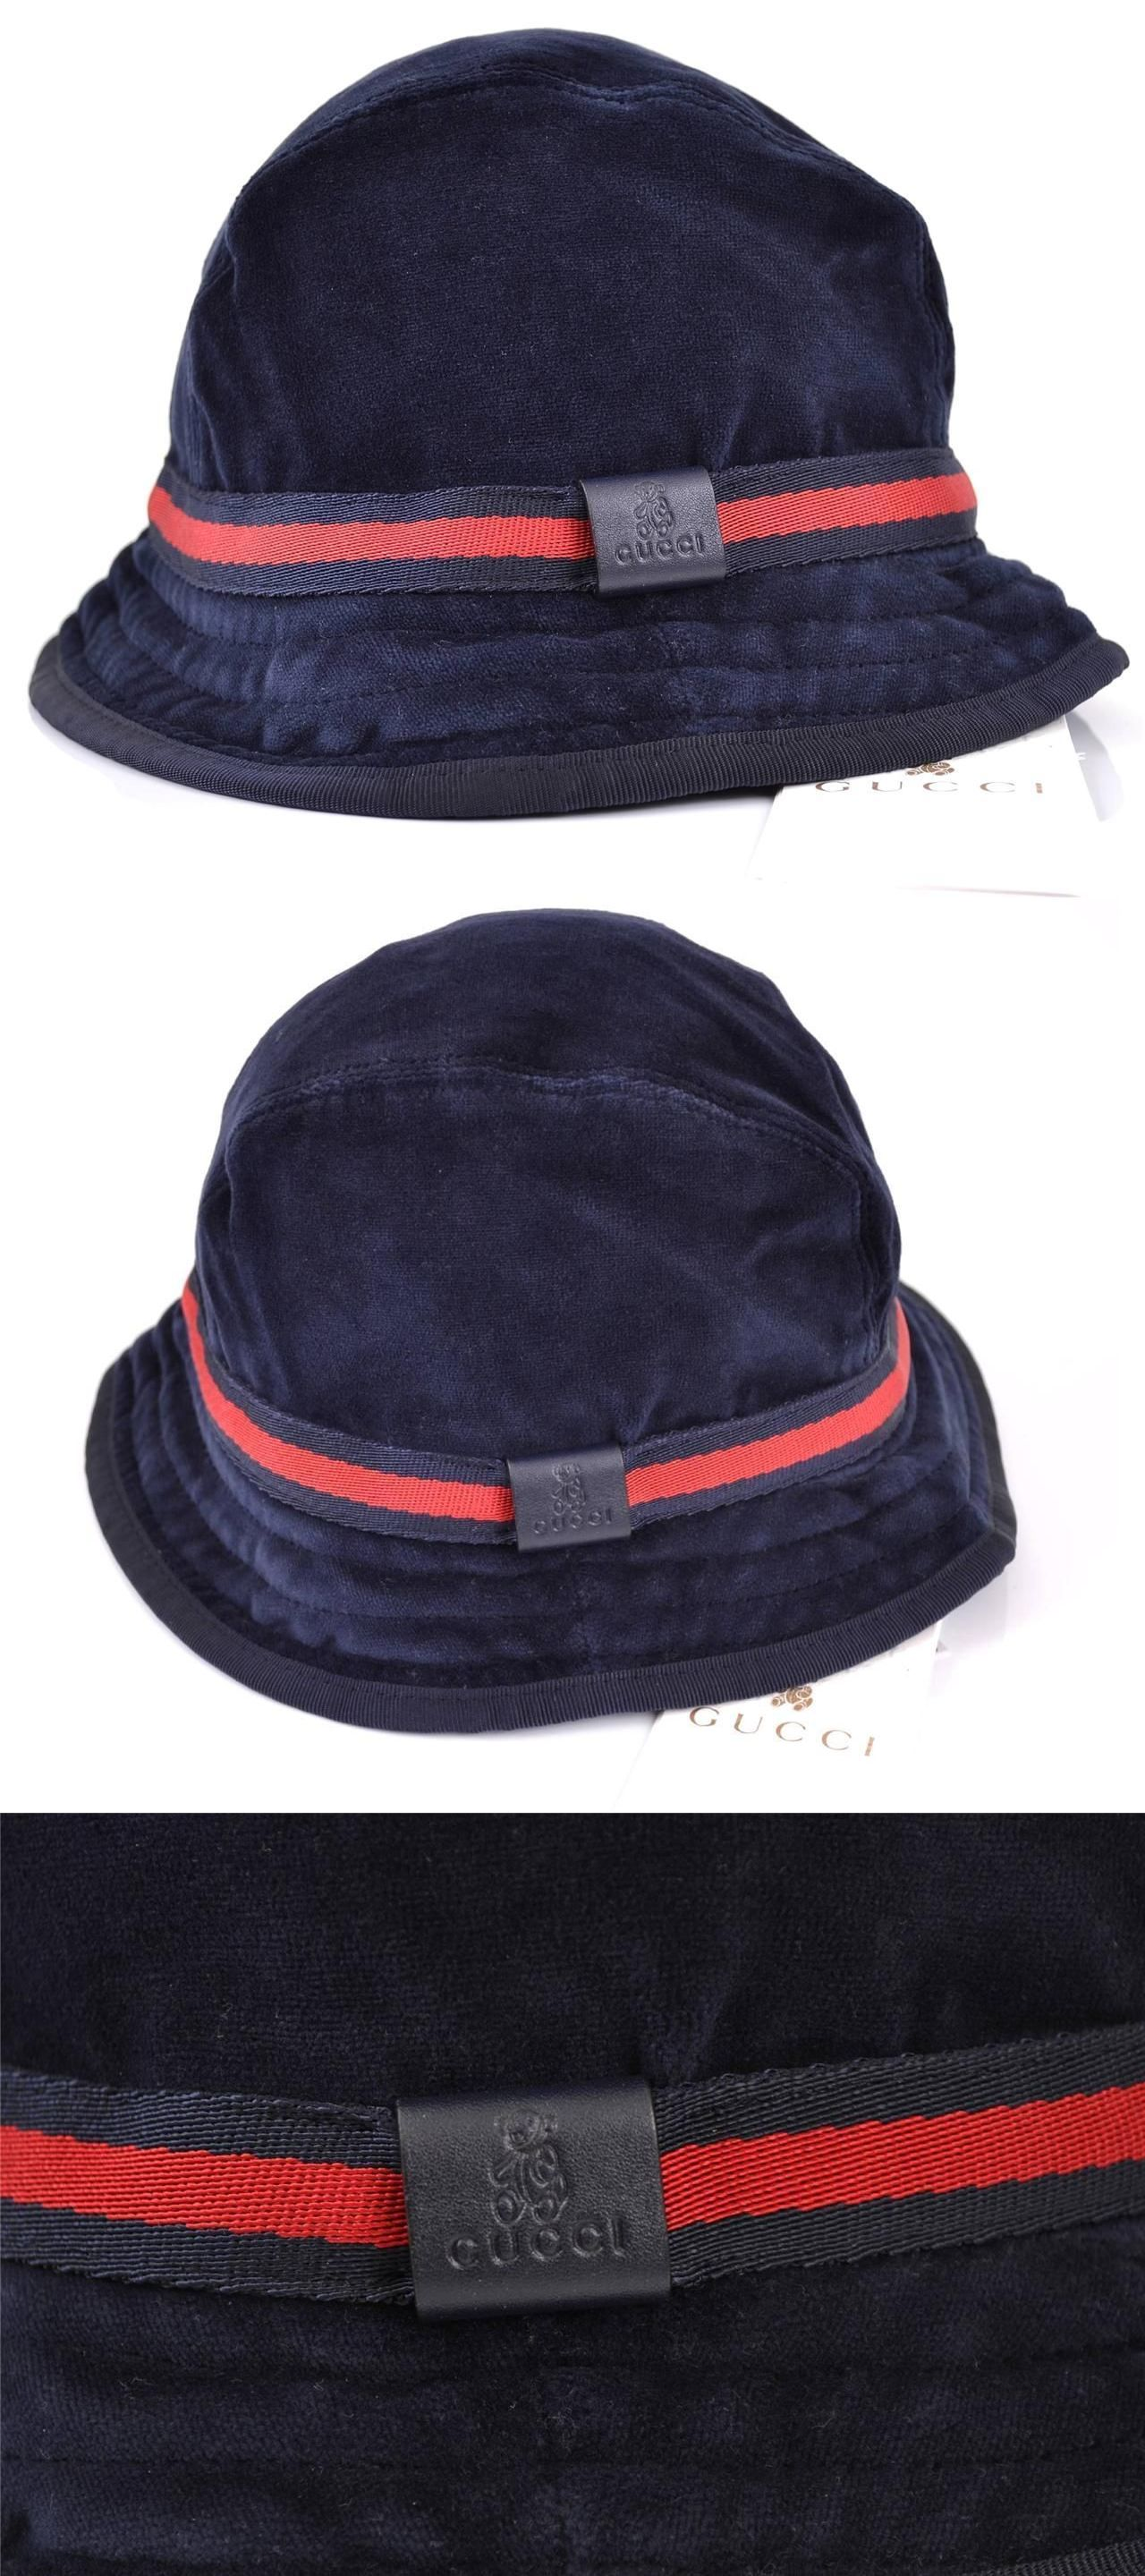 2df19553 Hats 163224: Nwt New Gucci Baby Girls Boys Navy Blue Velvet Red Web Fedora Bucket  Hat L -> BUY IT NOW ONLY: $79 on eBay!